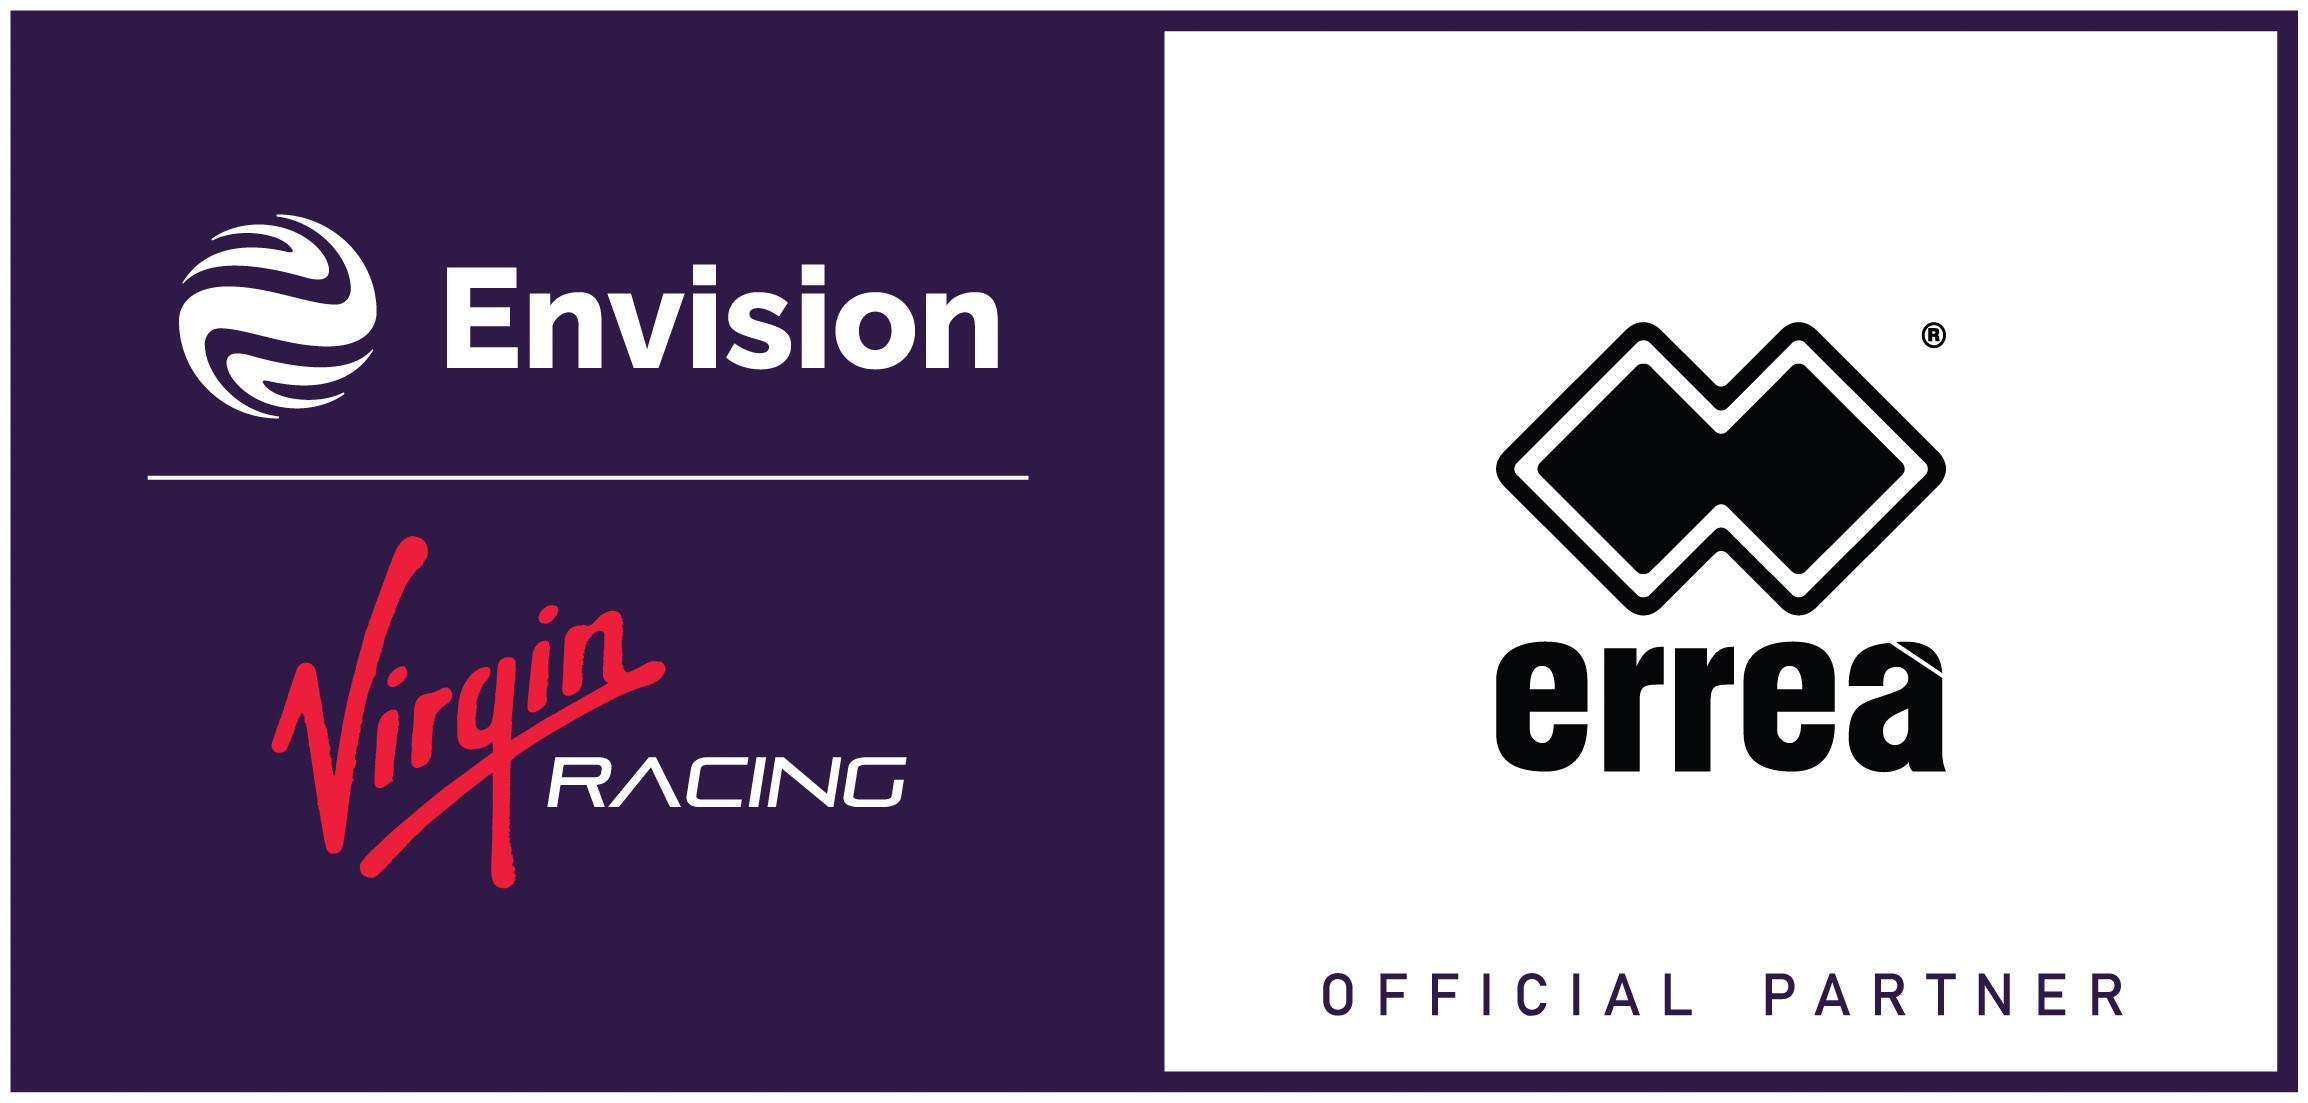 Erreà Sport is the new Official Team Clothing Partner & Merchandiser of the Envision Virgin Racing Formula E Team